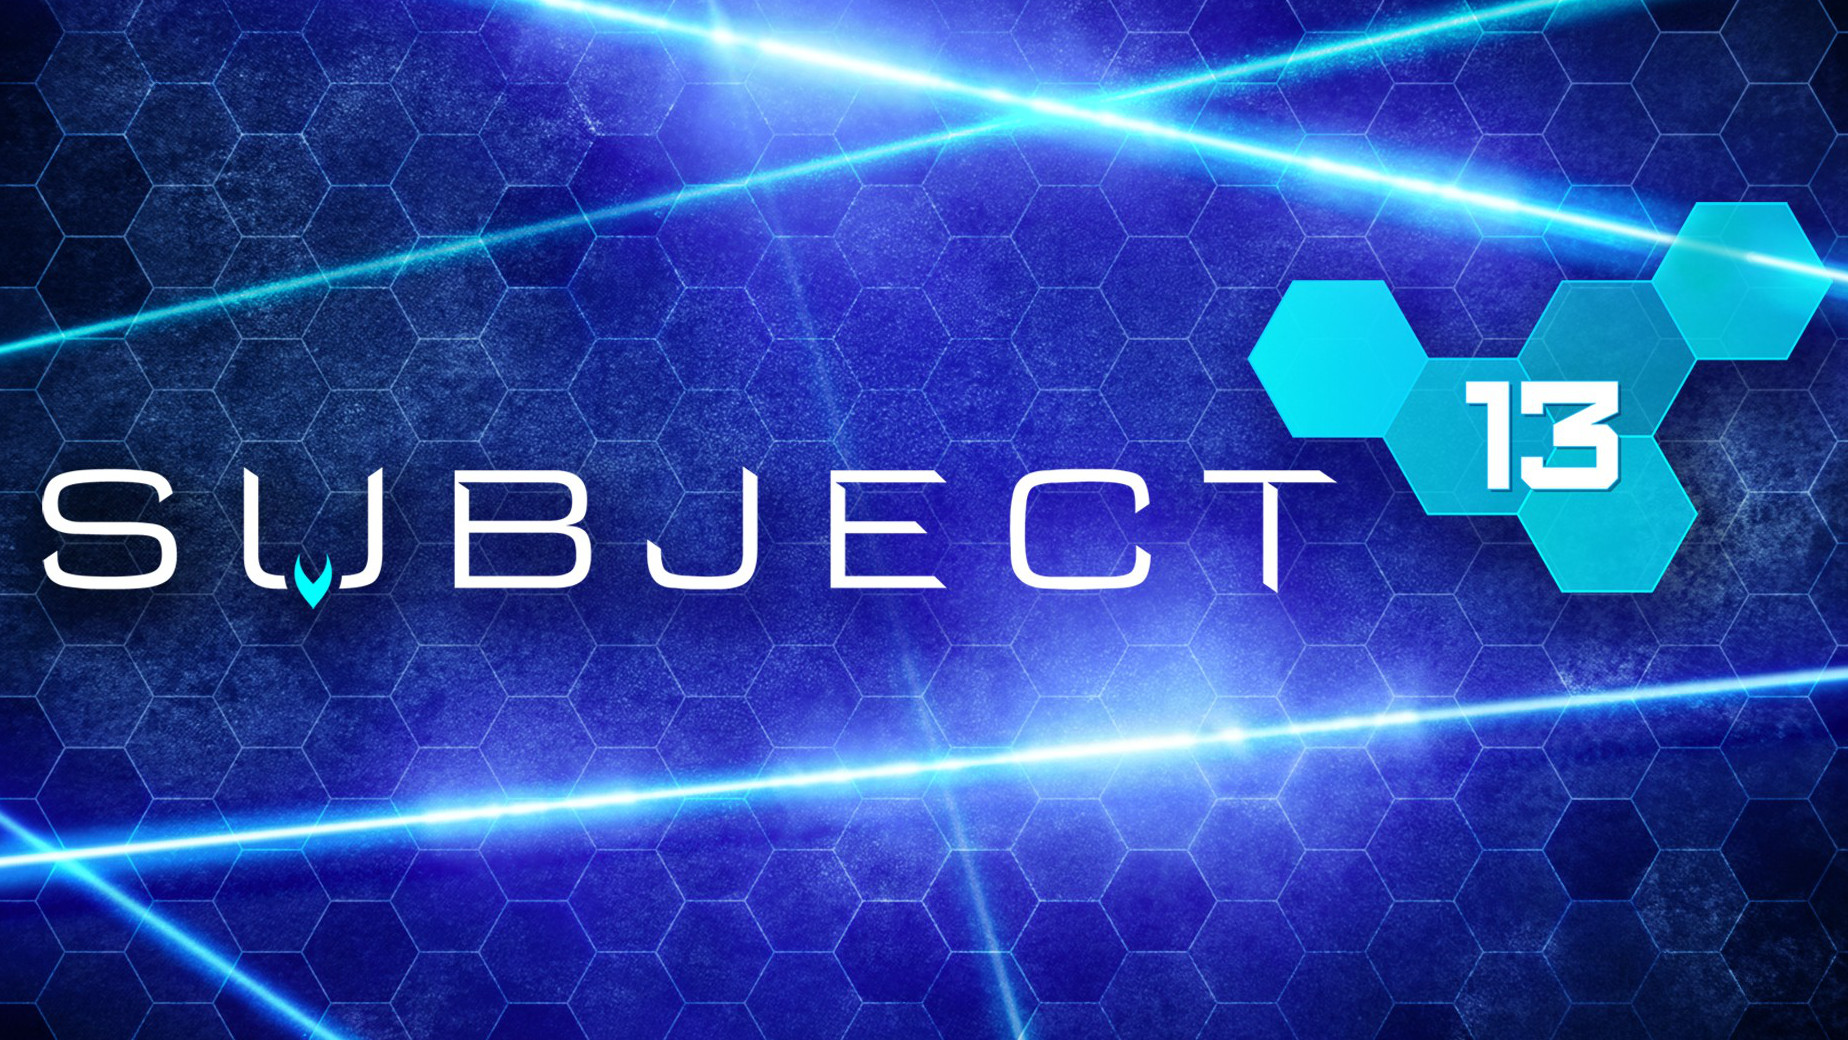 Subject-13-project-image-featured